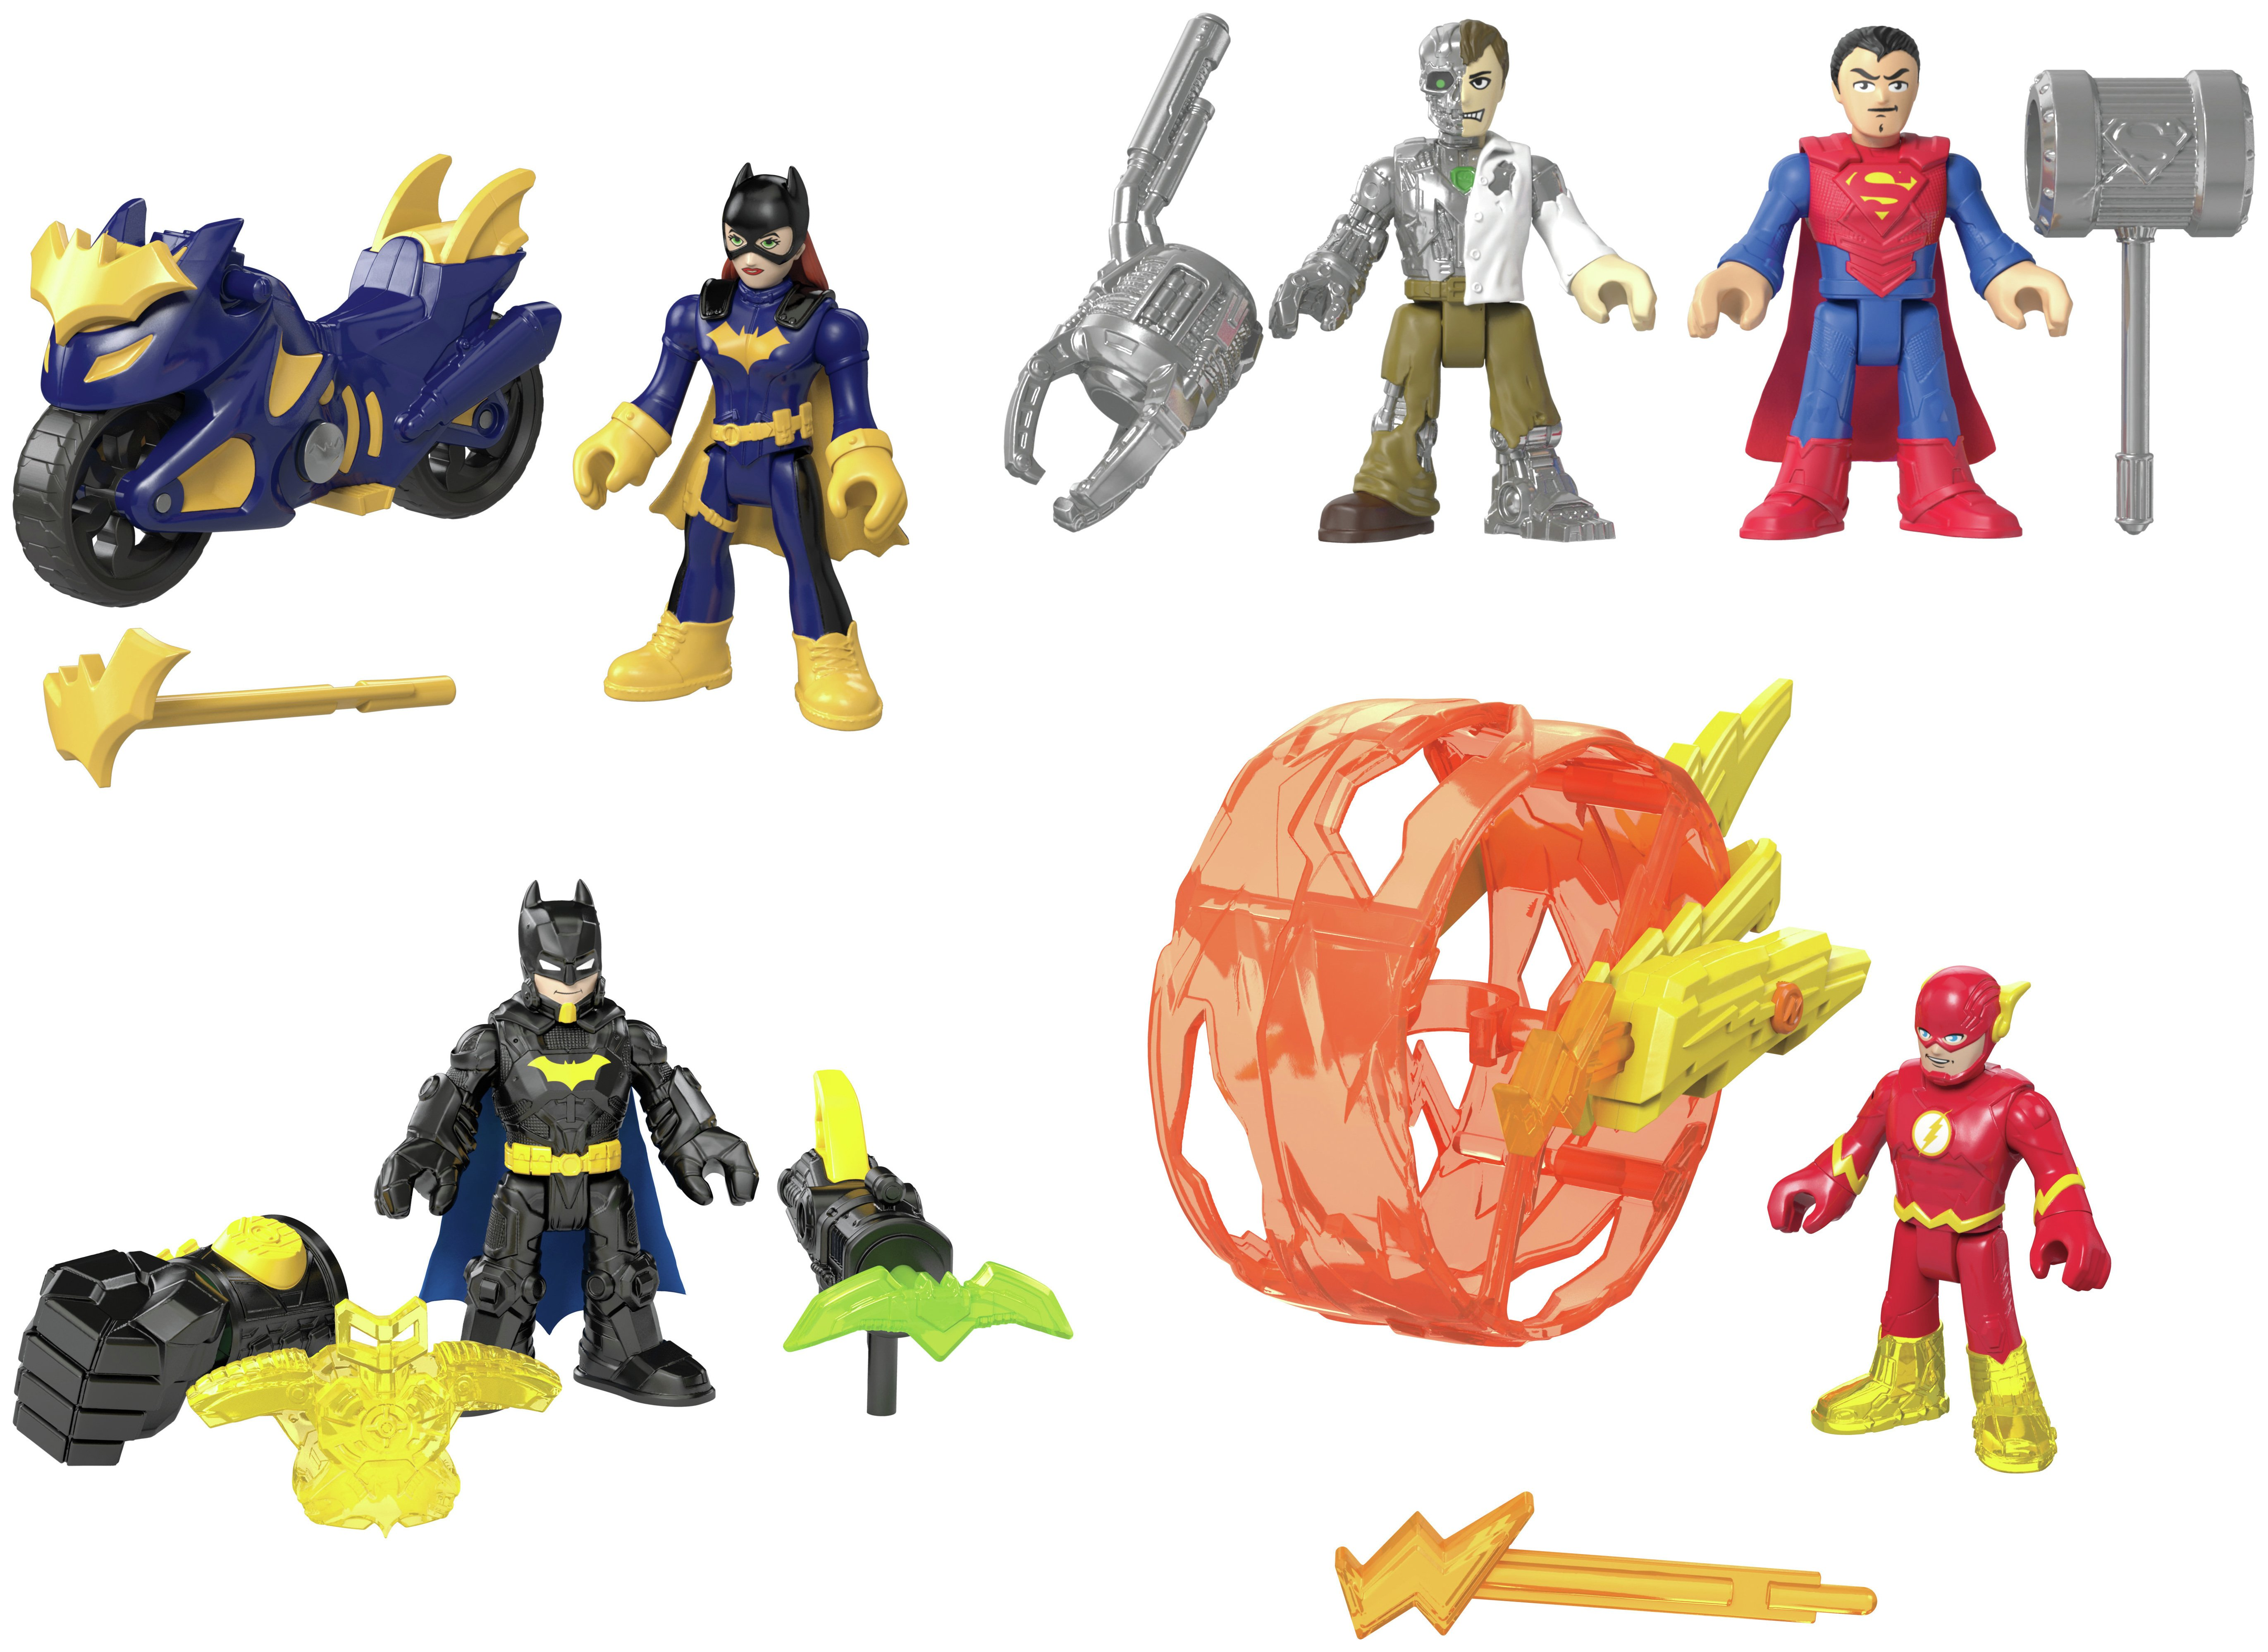 Fisher-Price - Imaginext DC Super Friends Figure Assortment